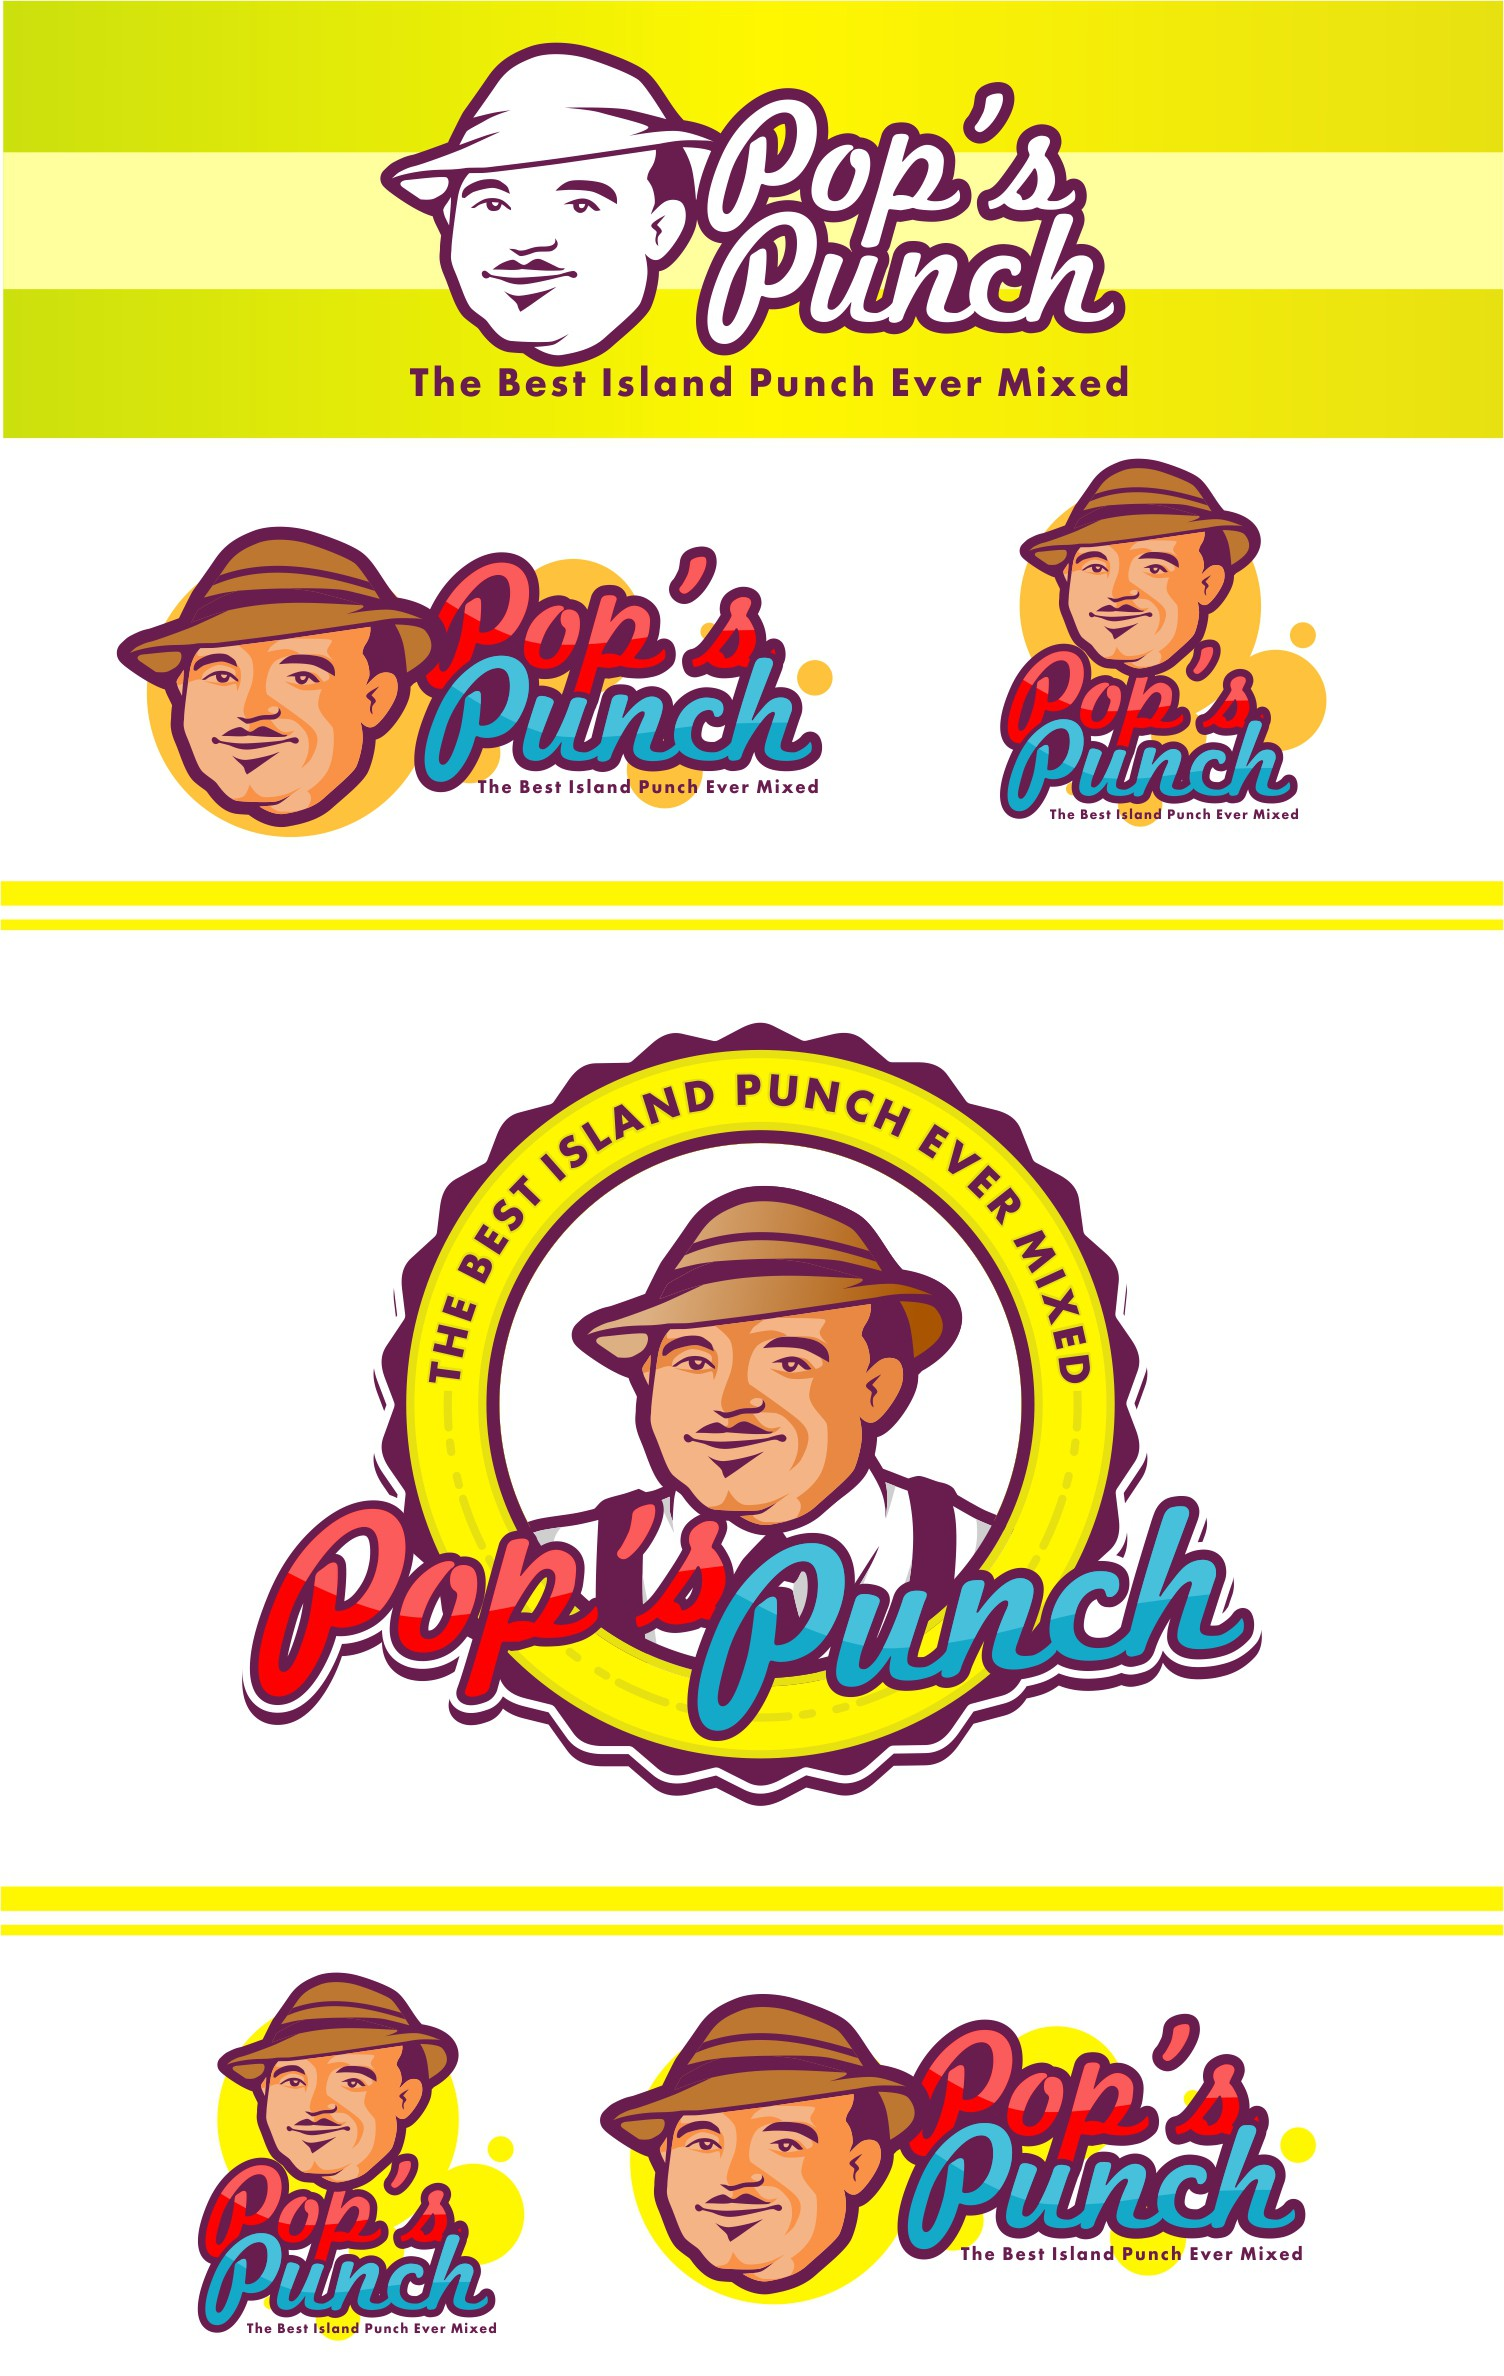 Existing Beverage Business Logo Needing Facelift for Pop's Punch